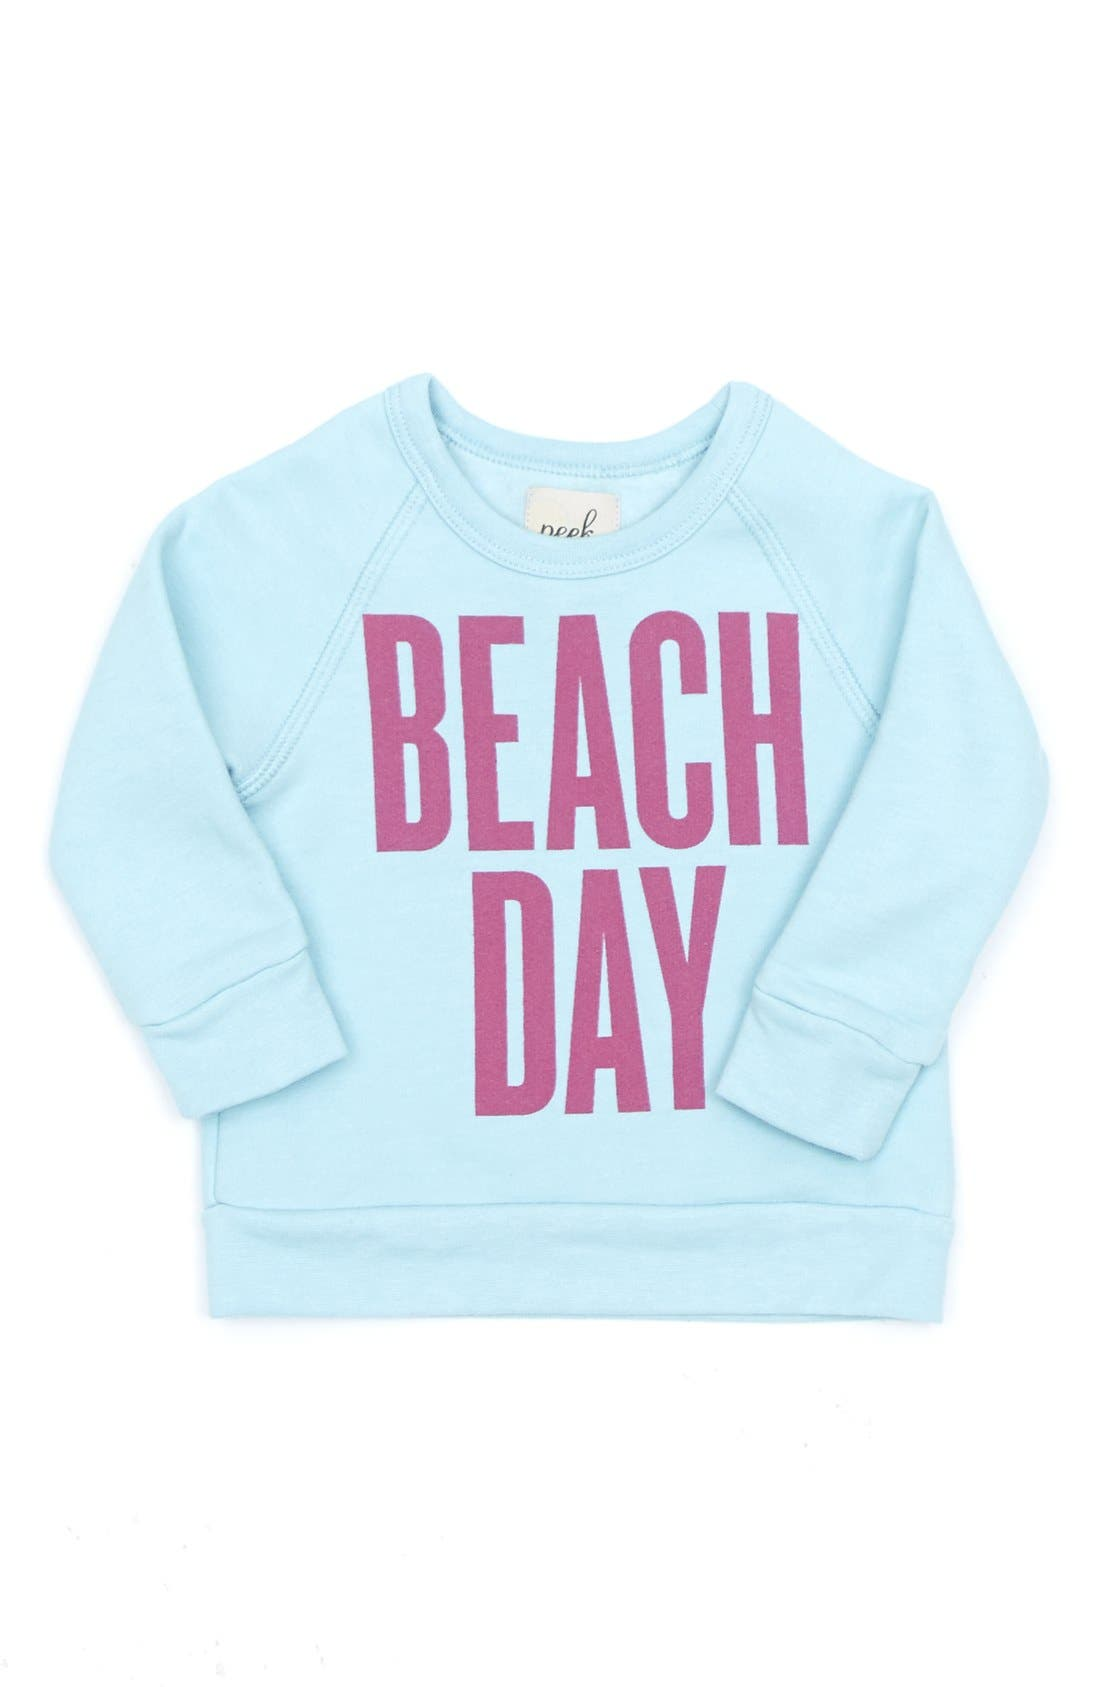 Alternate Image 1 Selected - Peek 'Beach Day' Crewneck Sweatshirt (Toddler Girls, Little Girls & Big Girls)